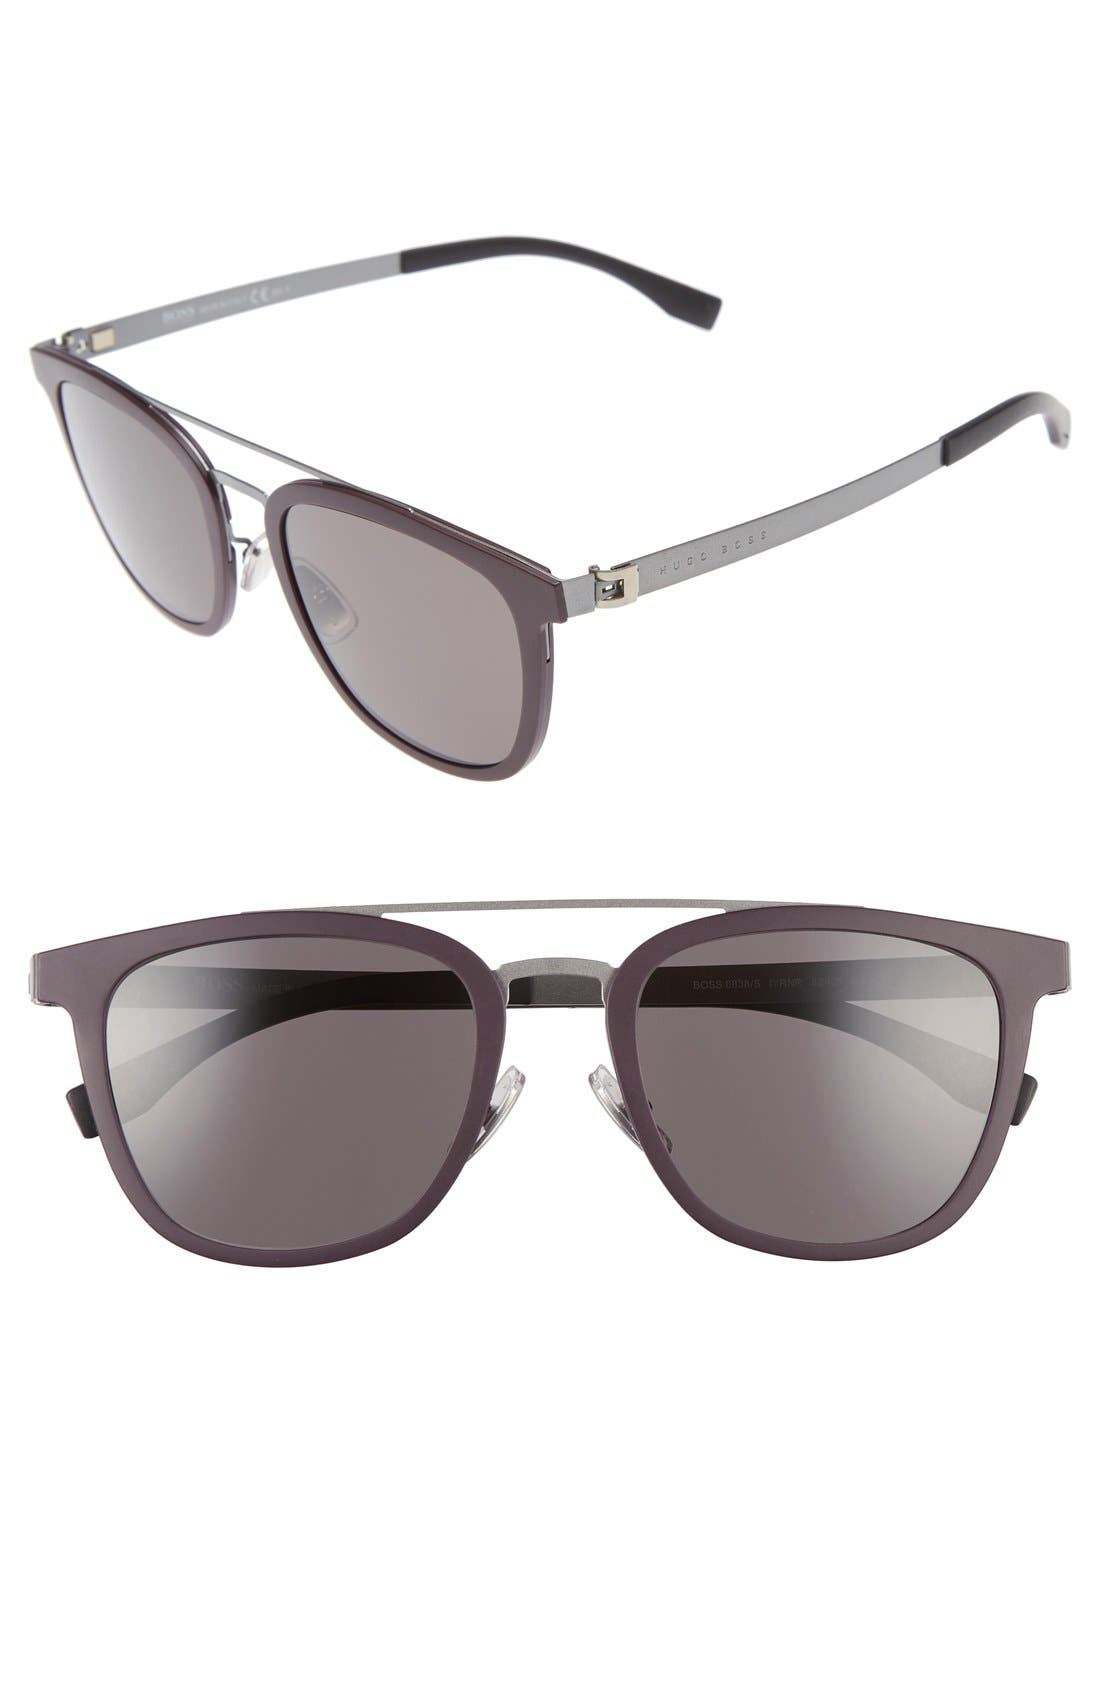 838/S 52mm Sunglasses,                         Main,                         color, Burgundy/ Ruthenium